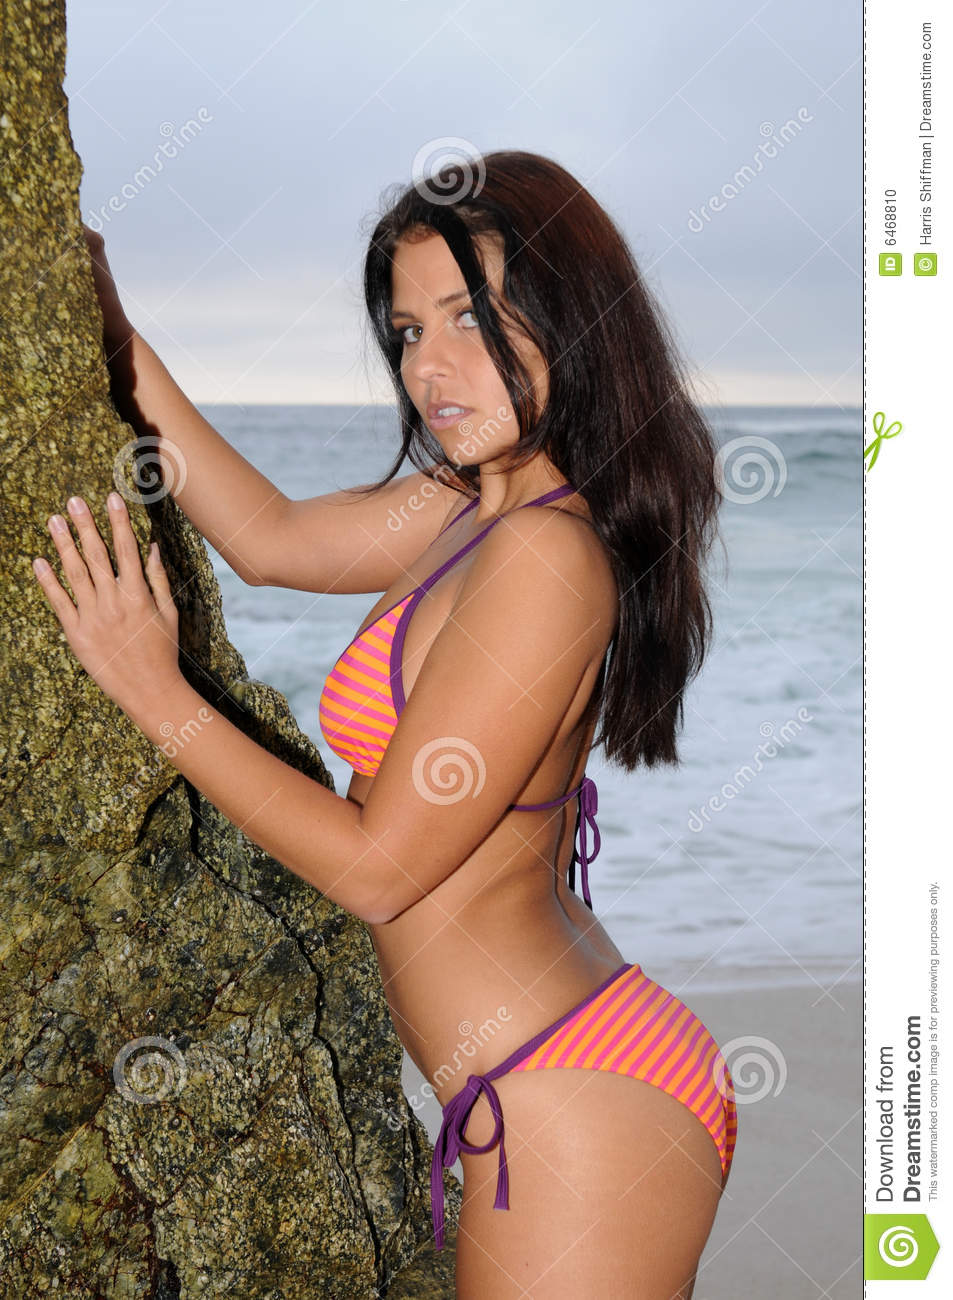 Beach Girl Stock Photo Image Of Swimsuit, Brown, Firm -7493